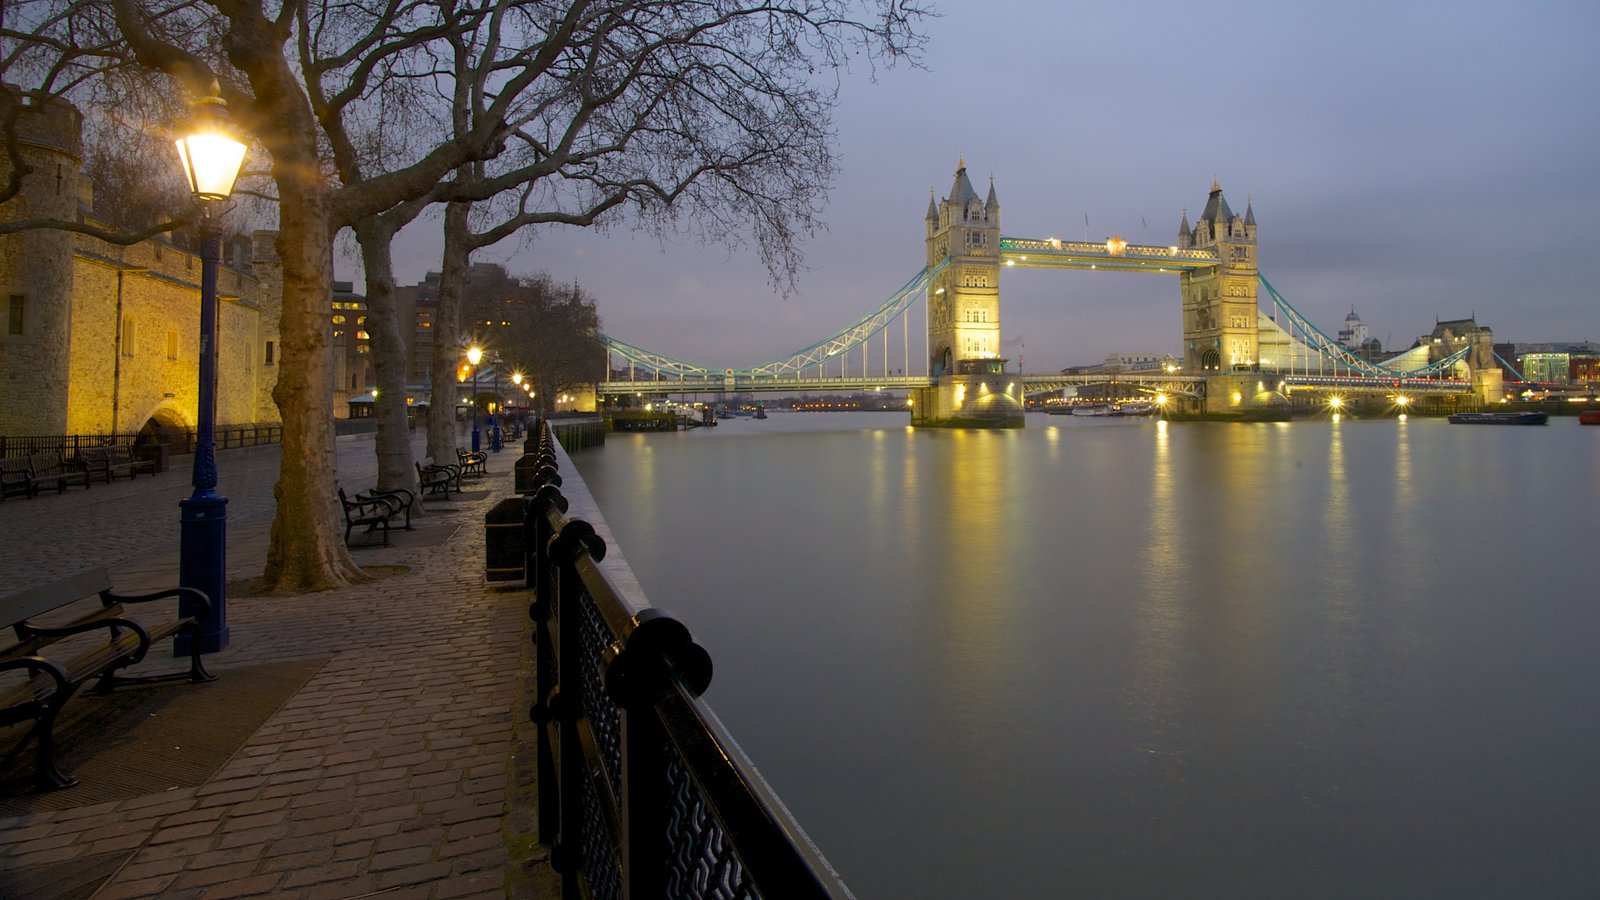 Tower Bridge which includes a monument, a bridge and heritage architecture